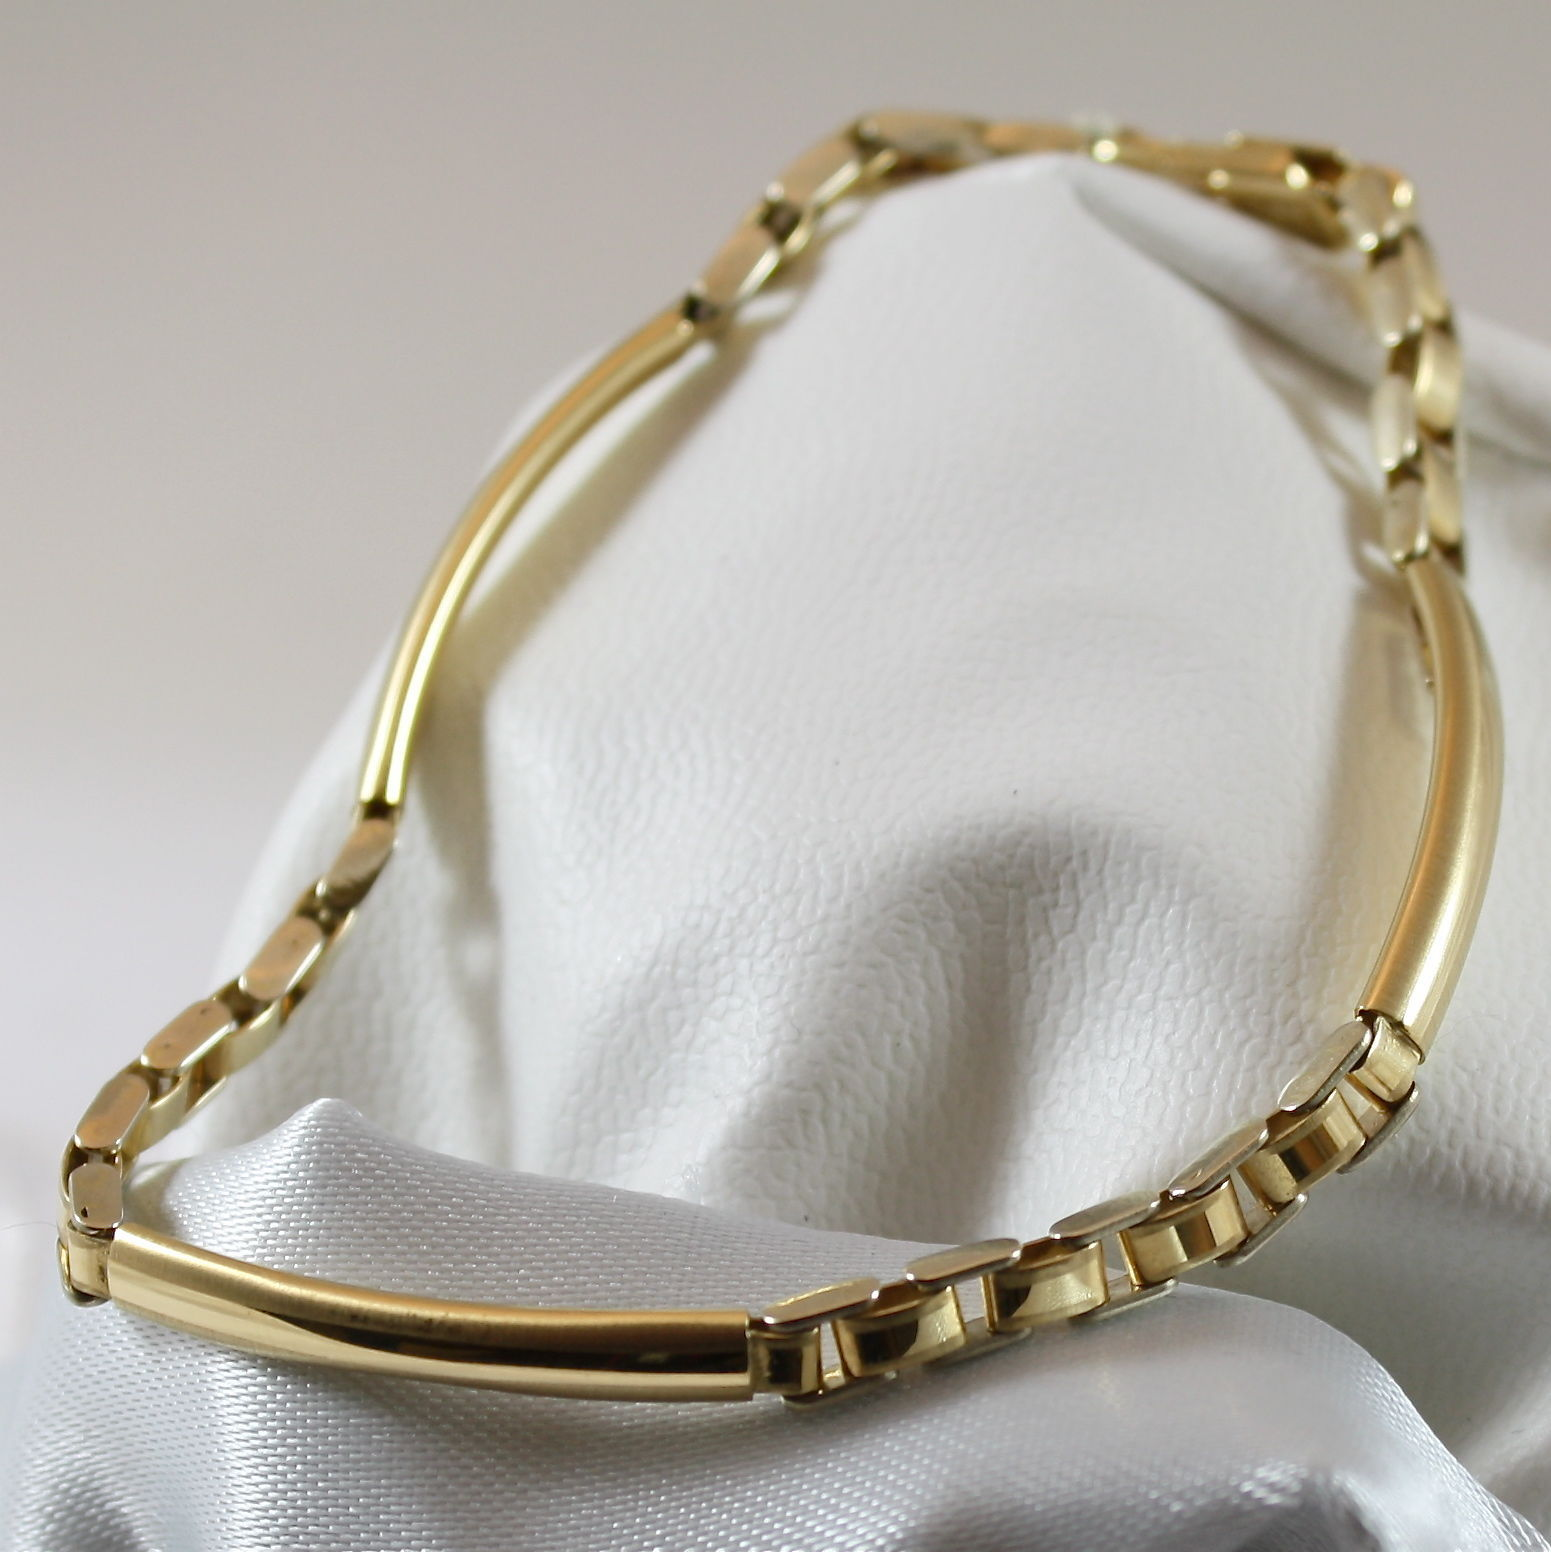 18K 750 YELLOW GOLD SOLID BRACELET, YELLOW SATIN GOLD WITH PLATE MADE IN ITALY